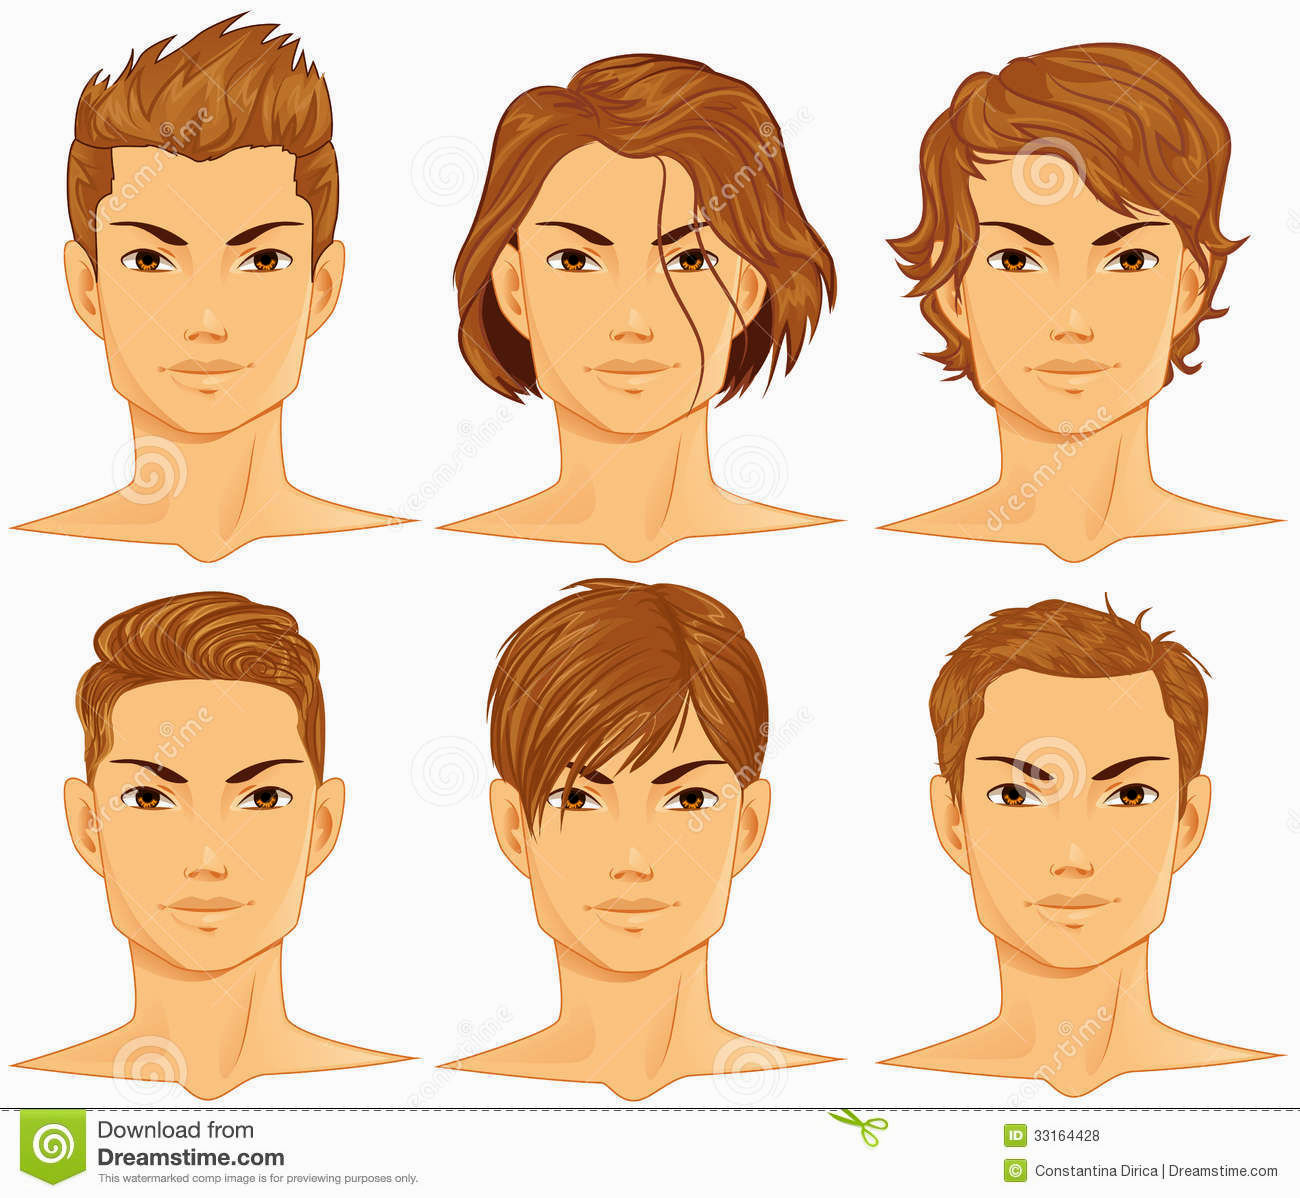 Short Hair clipart mens hair Curly Hairs Draw Picture draw